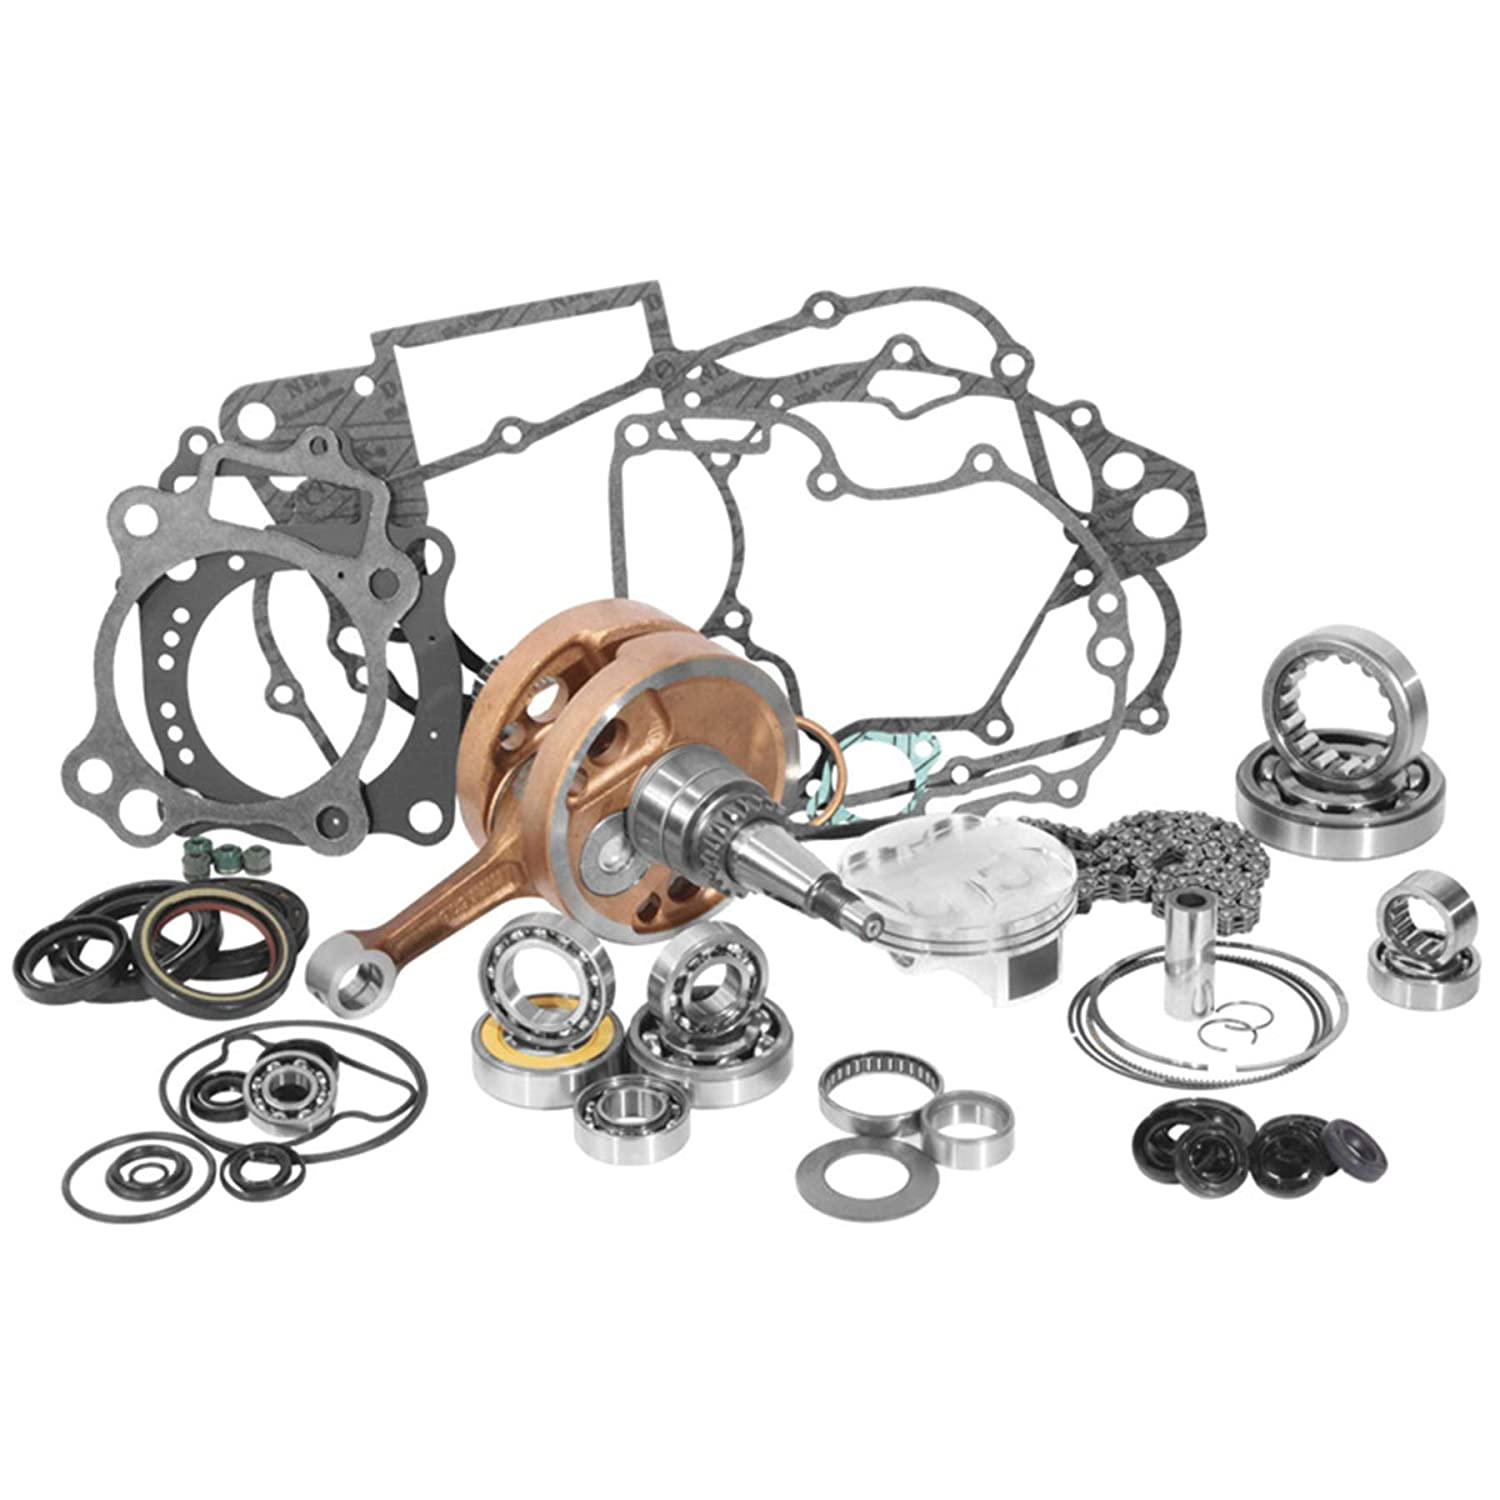 Complete Engine Rebuild Kit In A Box For 2007 Yamaha YZ85 Offroad Motorcycle